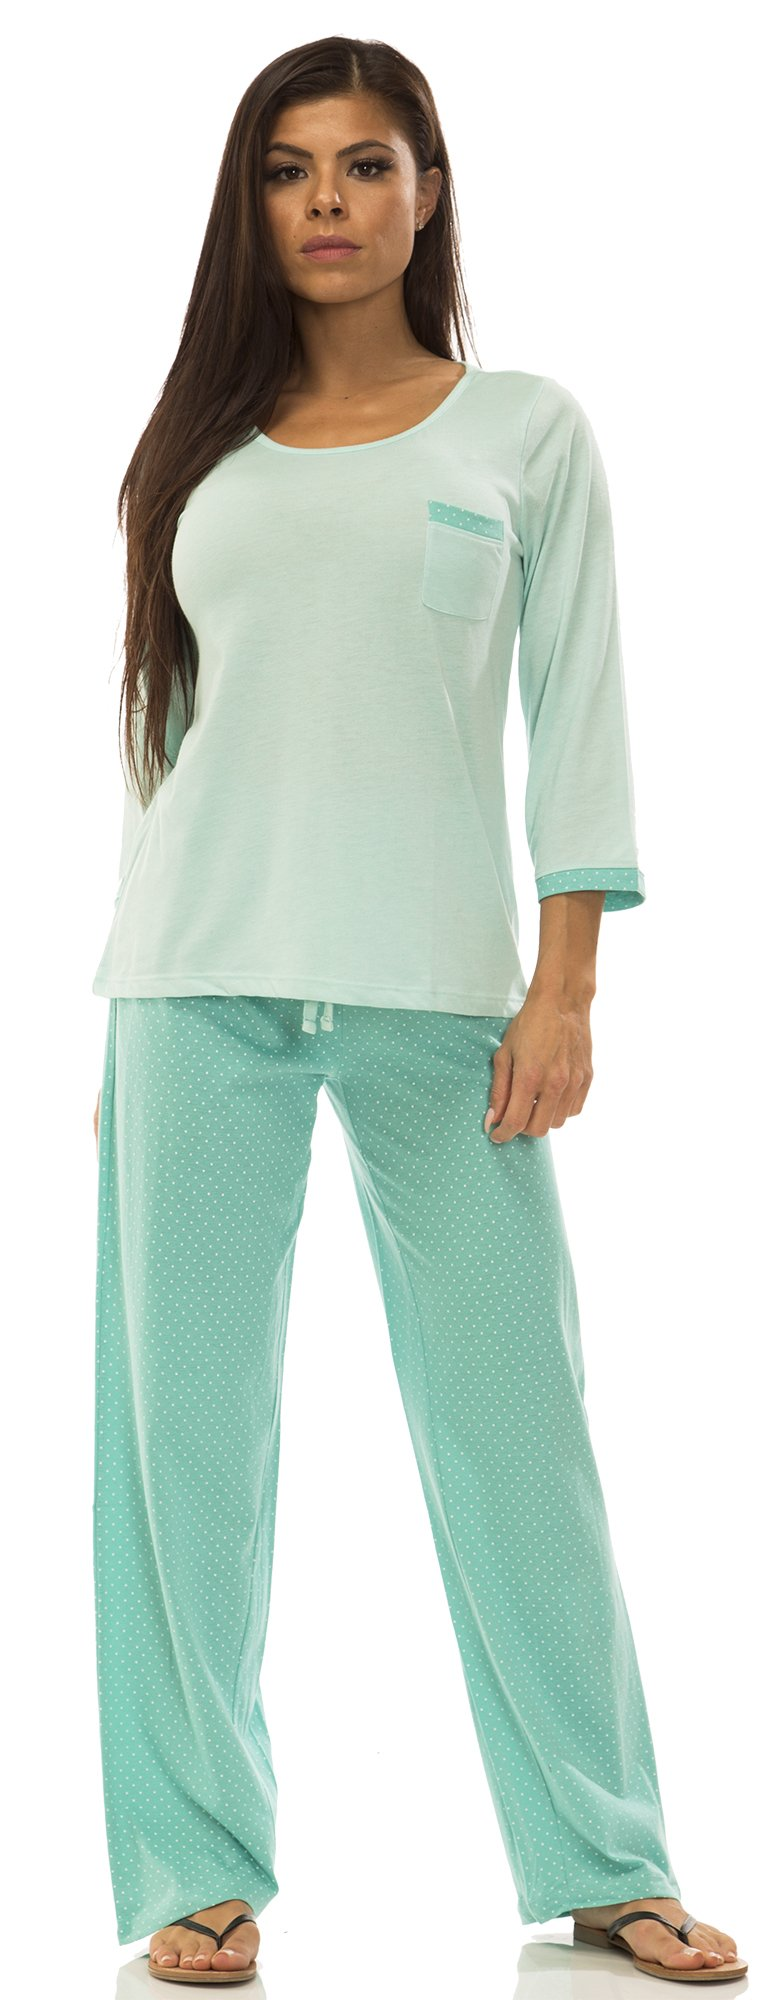 IZOD (6455AZ) Womens Womens 100% Cotton High Low Tee Pajama Lounge Set Size: Large in Turquoise (441)